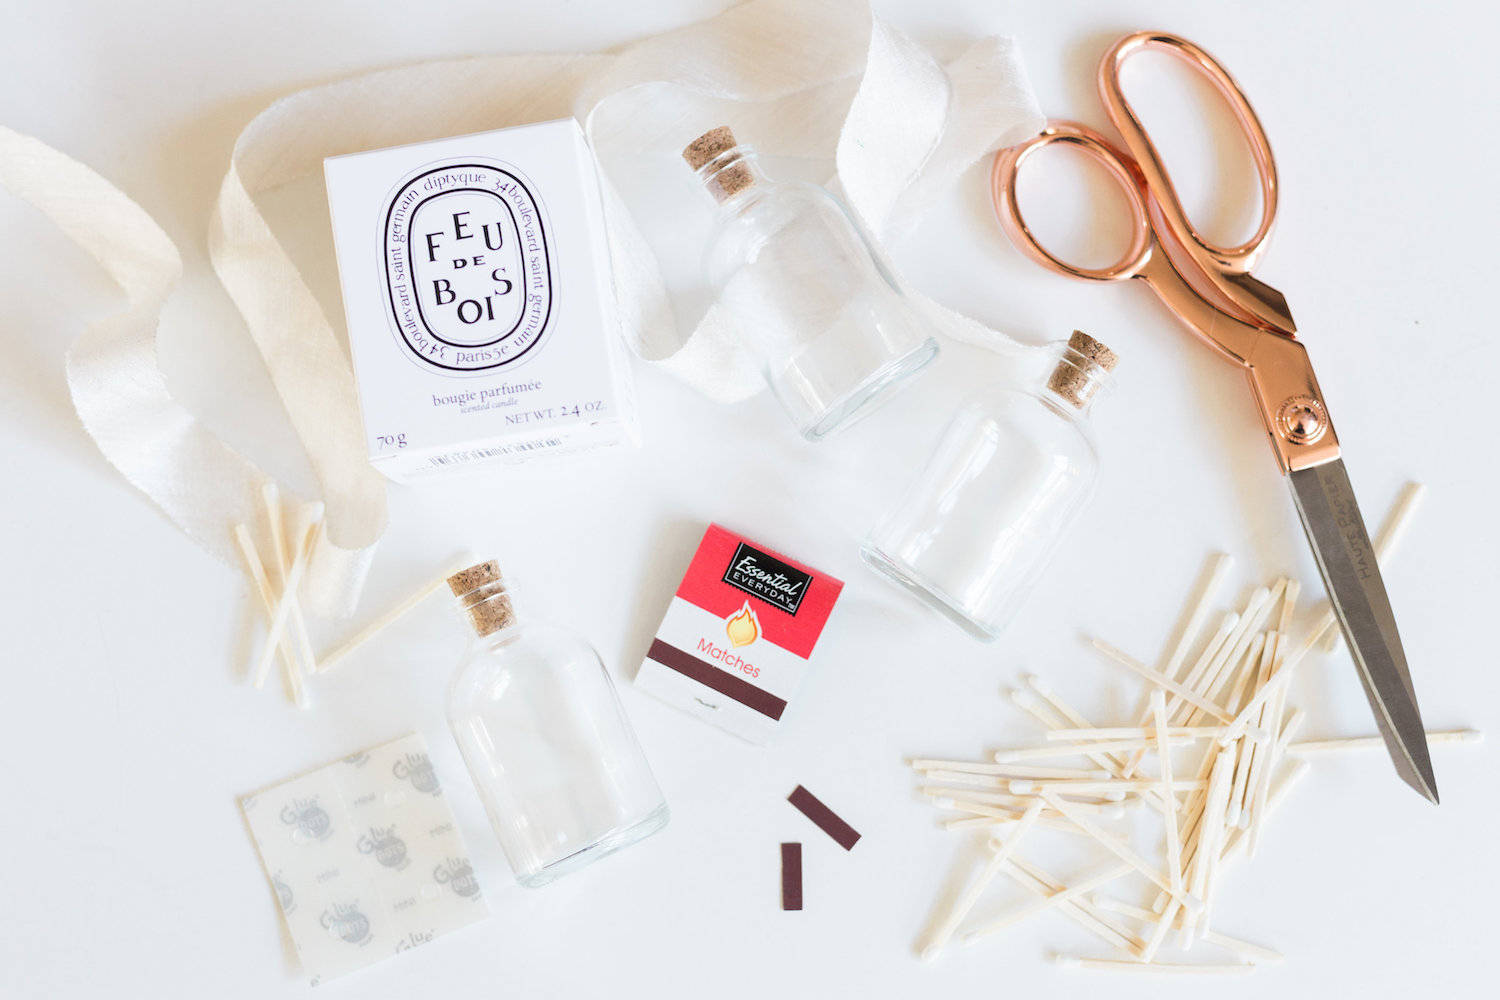 Supplies for this DIY holiday gift | A Fabulous Fete